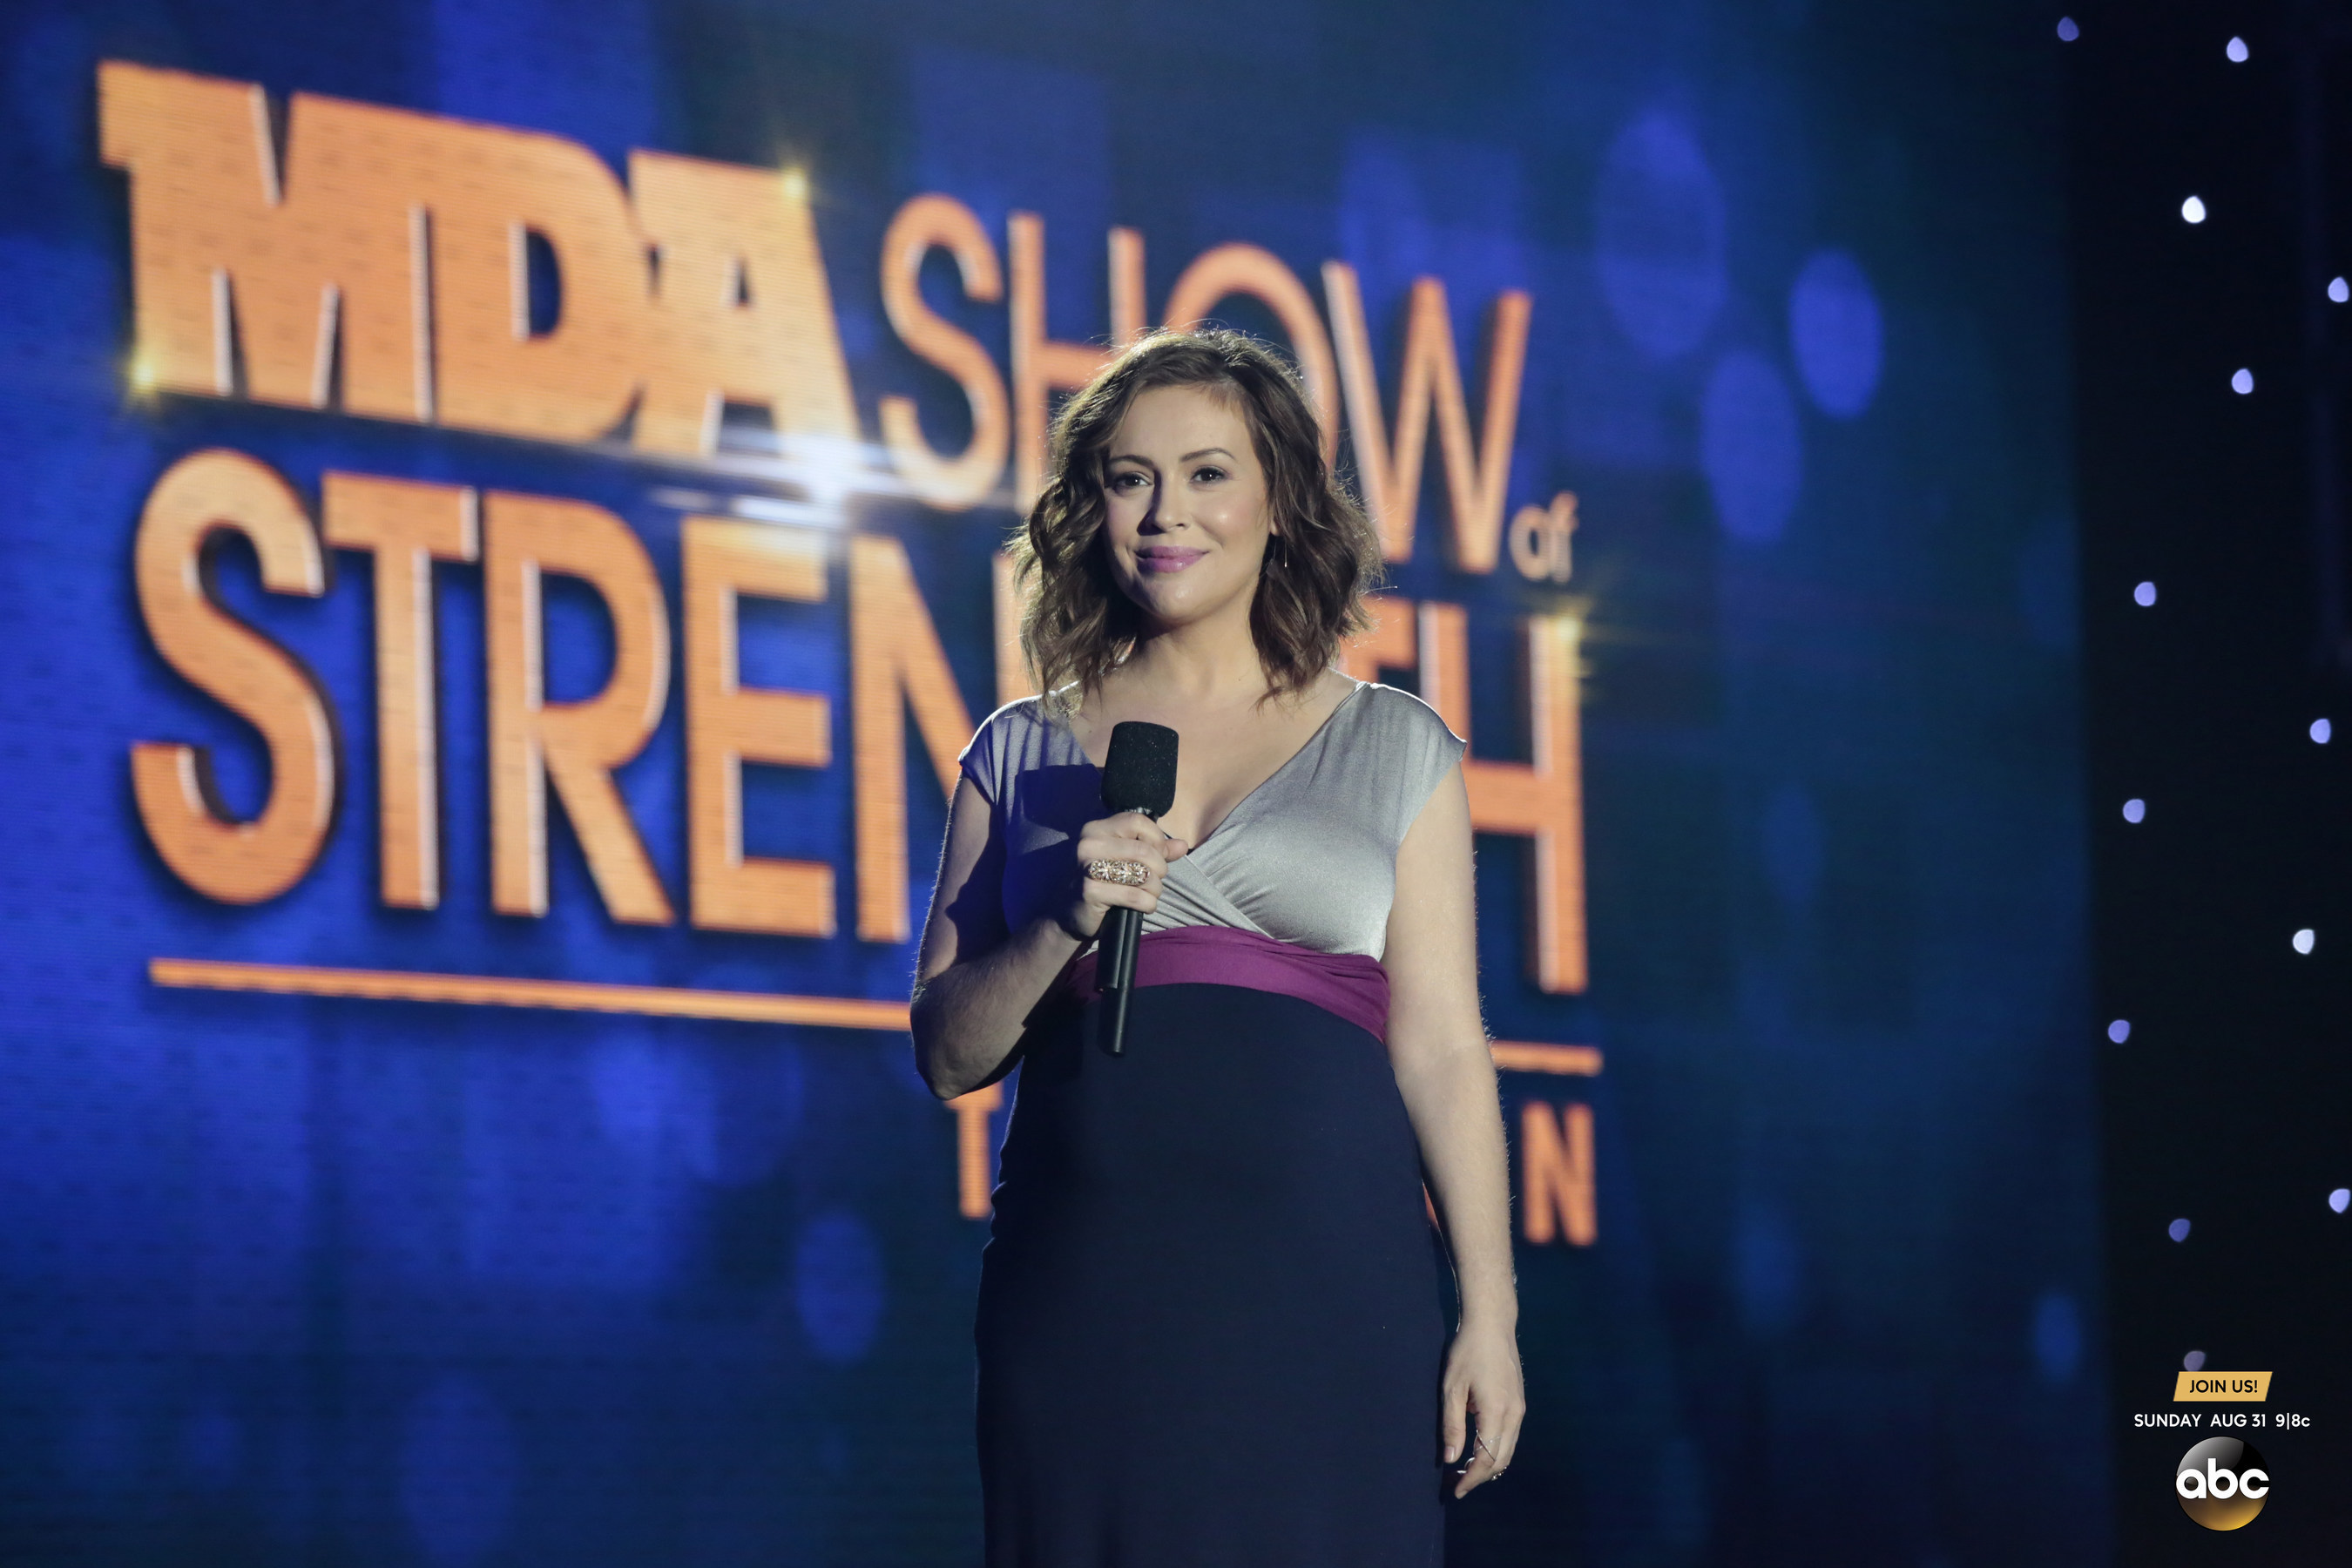 """Alyssa Milano of the ABC hit drama series """"Mistresses"""" introduces some of the 2014 MDA Show of Strength Telethon's biggest talent during the 49th annual broadcast airing Sunday, Aug. 31 9